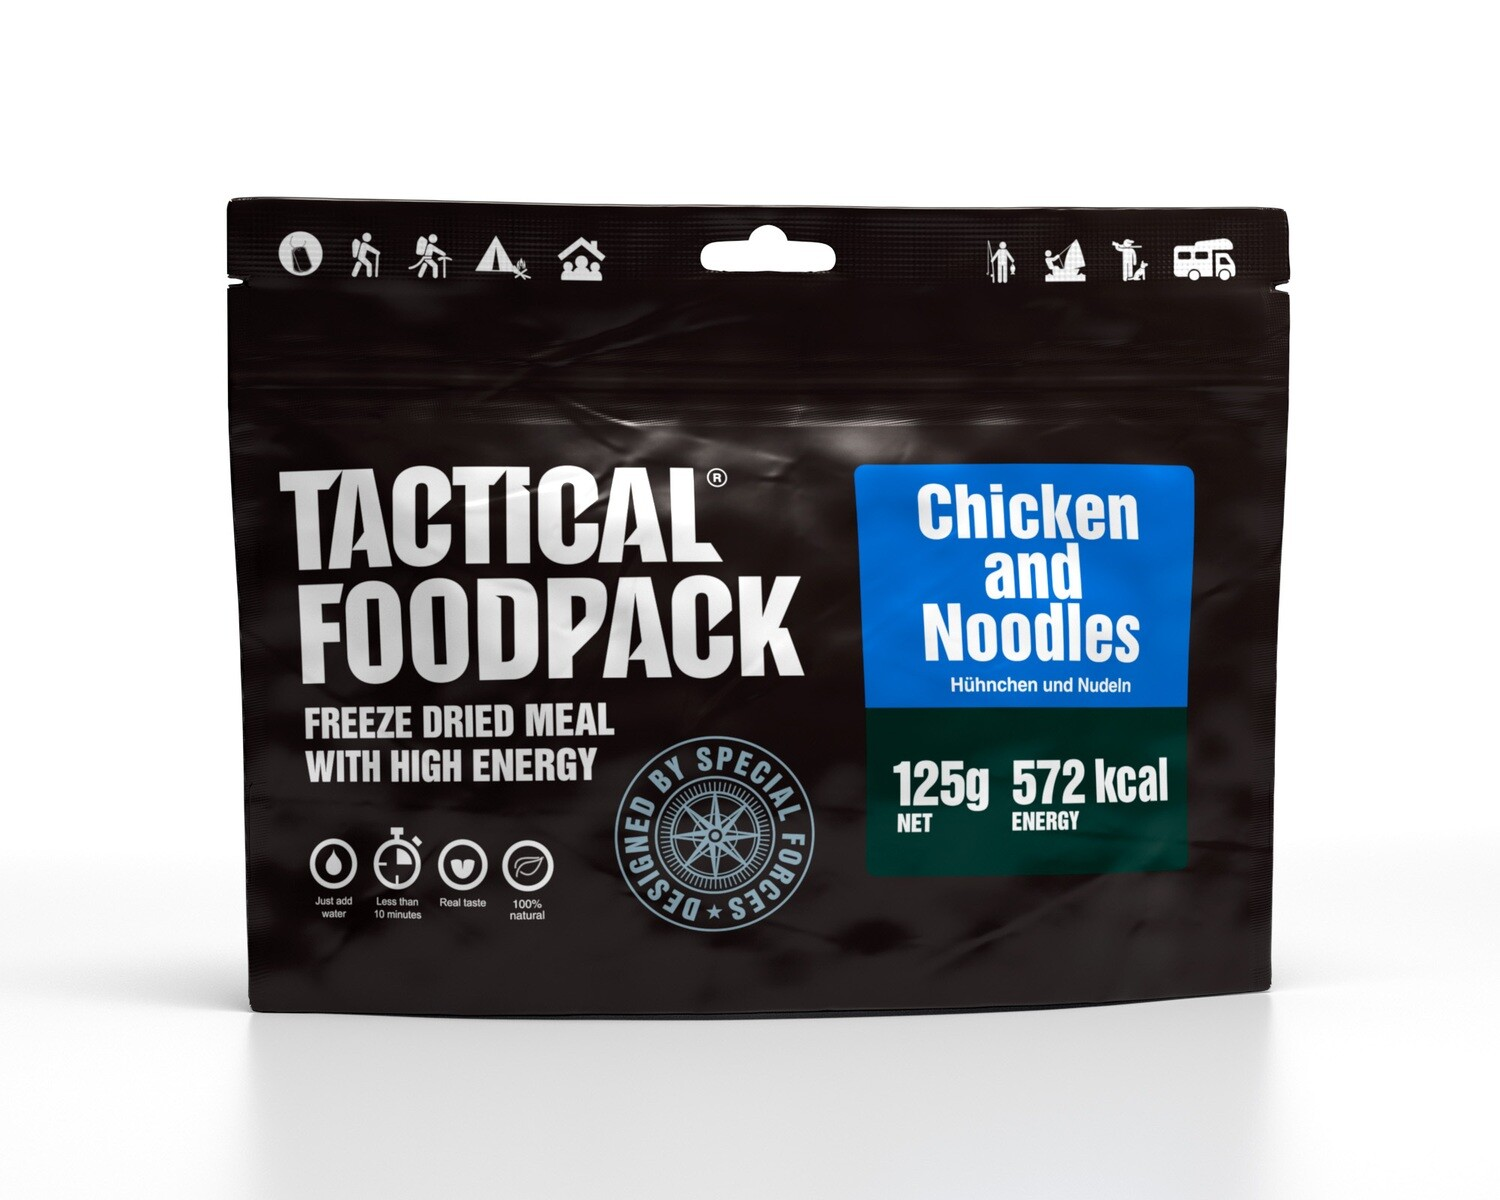 Tactical Foodpack - Chicken and Noodles